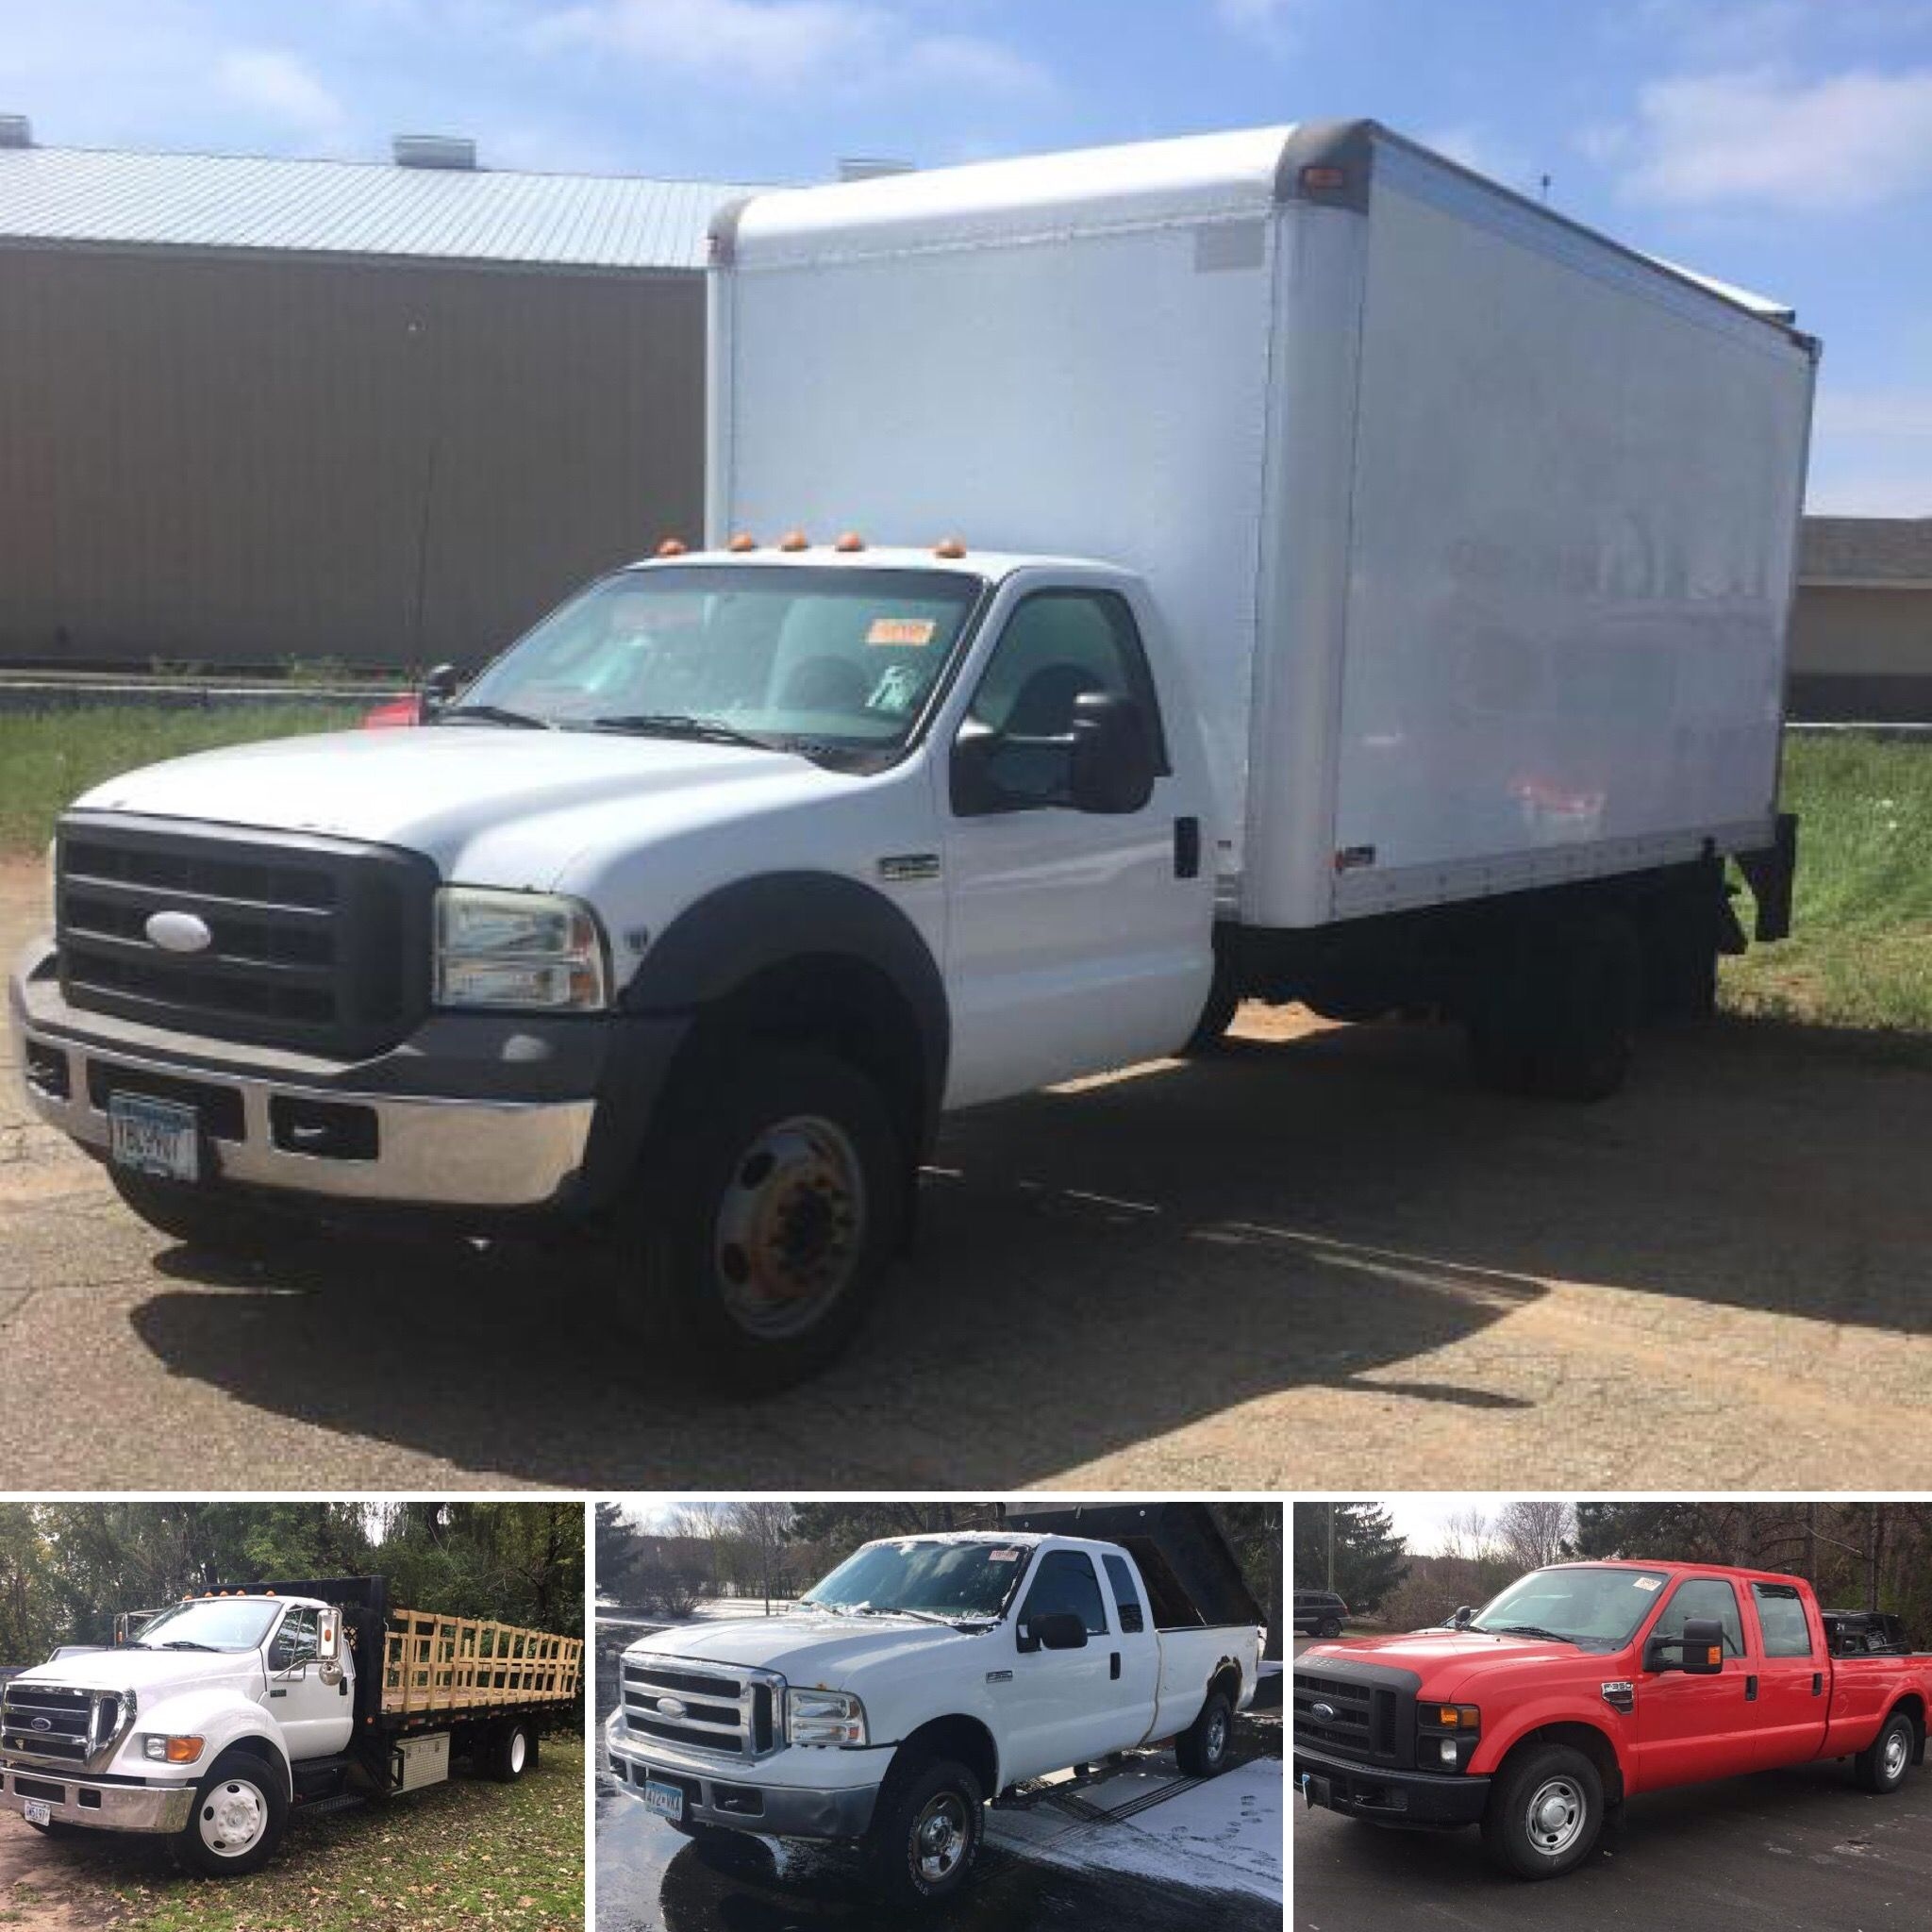 Auction Complete Check Out This Vehicle Auction In Shakopee Mn Flatbed Box Trucks Pickups And More Car Auctions Auction Online Auctions